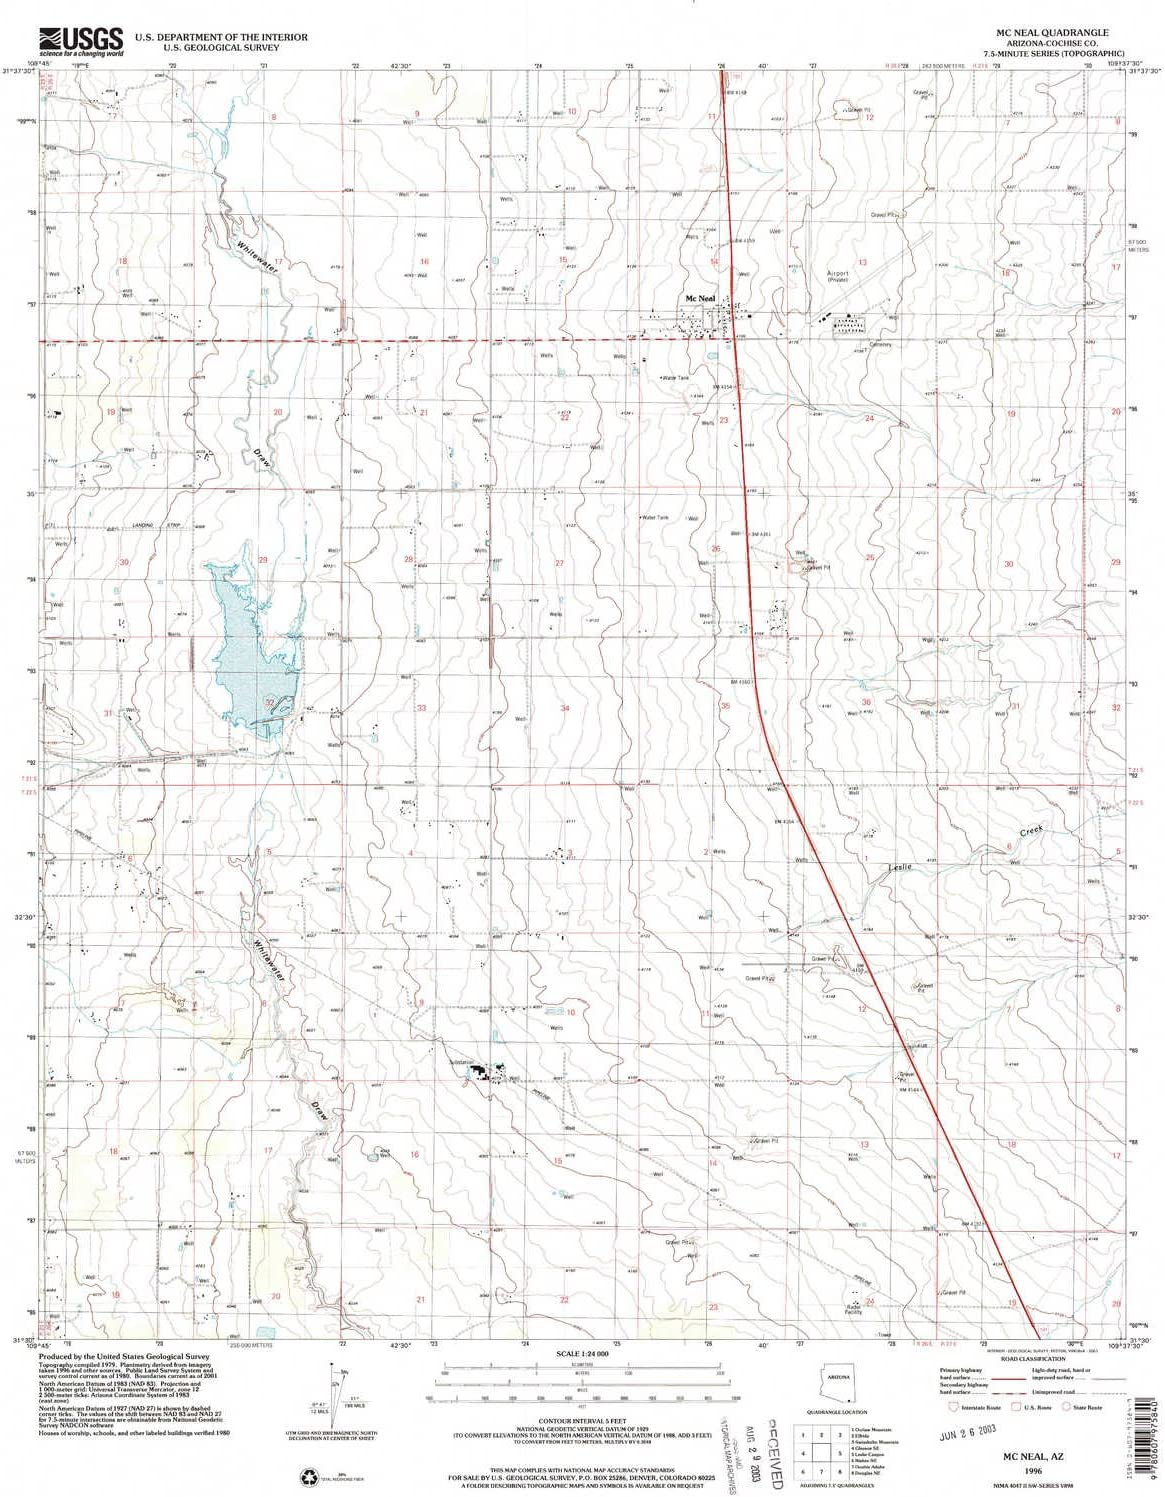 YellowMaps McNeal AZ topo Large discharge sale Luxury map X Minute 7.5 1:24000 Scale